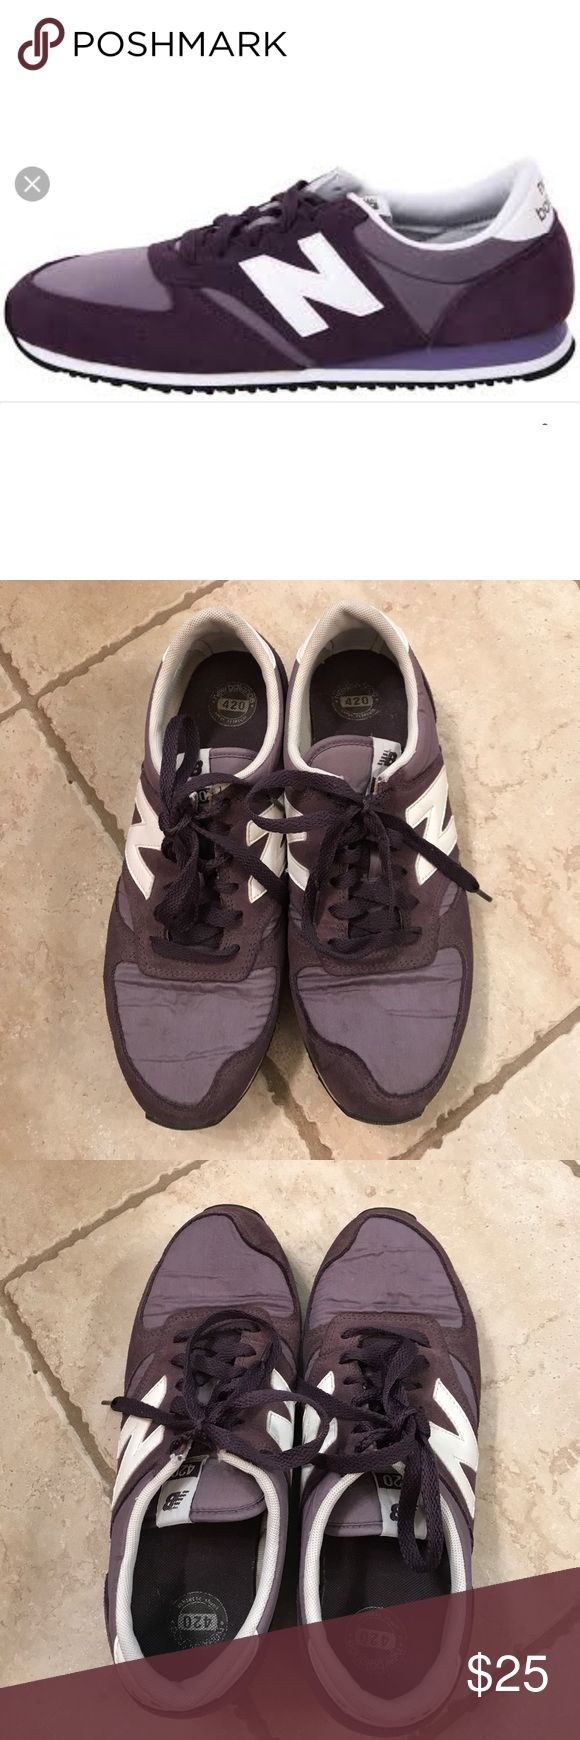 New Balance Vintage Purple 420 Trainers for Women Cute and comfy sneakers in vintage purple color. I'm a Women's 9, they fit me perfectly. Tag is in Men's size. This is a Women's 9. Bought these at a NYC boutique store. In good used condition. New Balance Shoes Sneakers